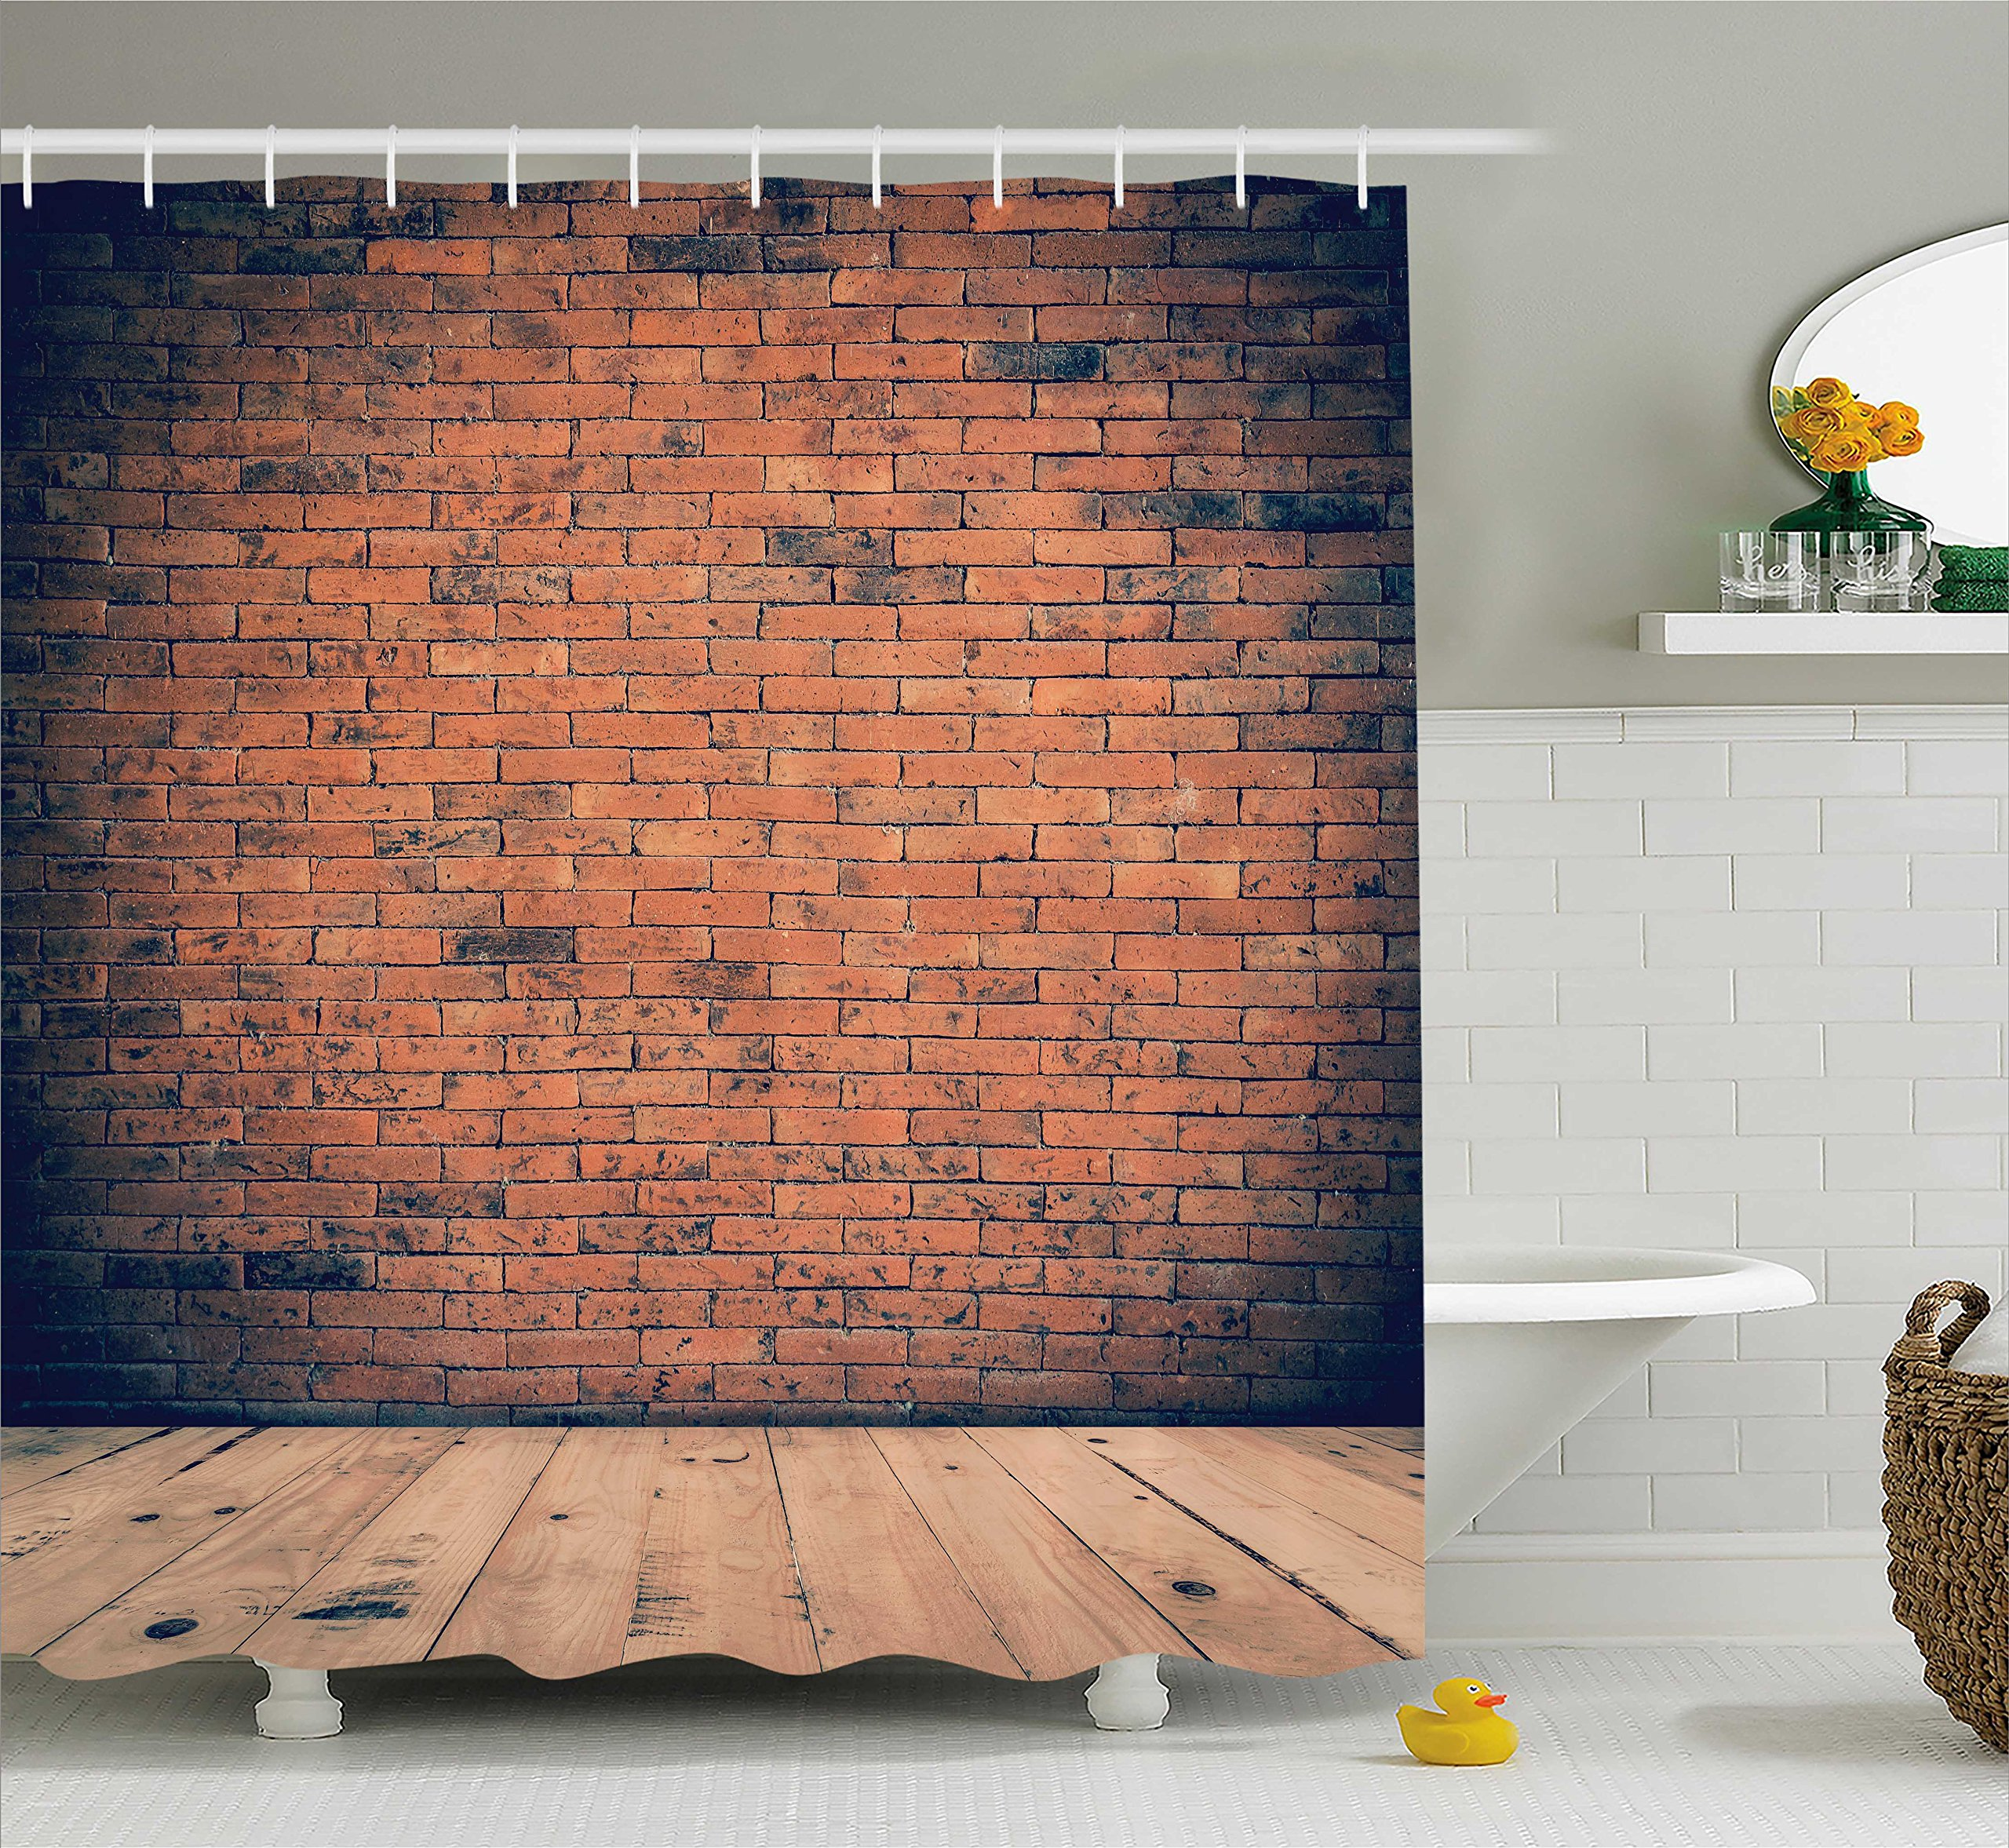 Ambesonne Vintage Decor Collection, Old Fashioned Bricks in Dark Room with Antique Wood Floor Vintage Ancient Retro Room Decor, Polyester Fabric Bathroom Shower Curtain Set with Hooks, Red